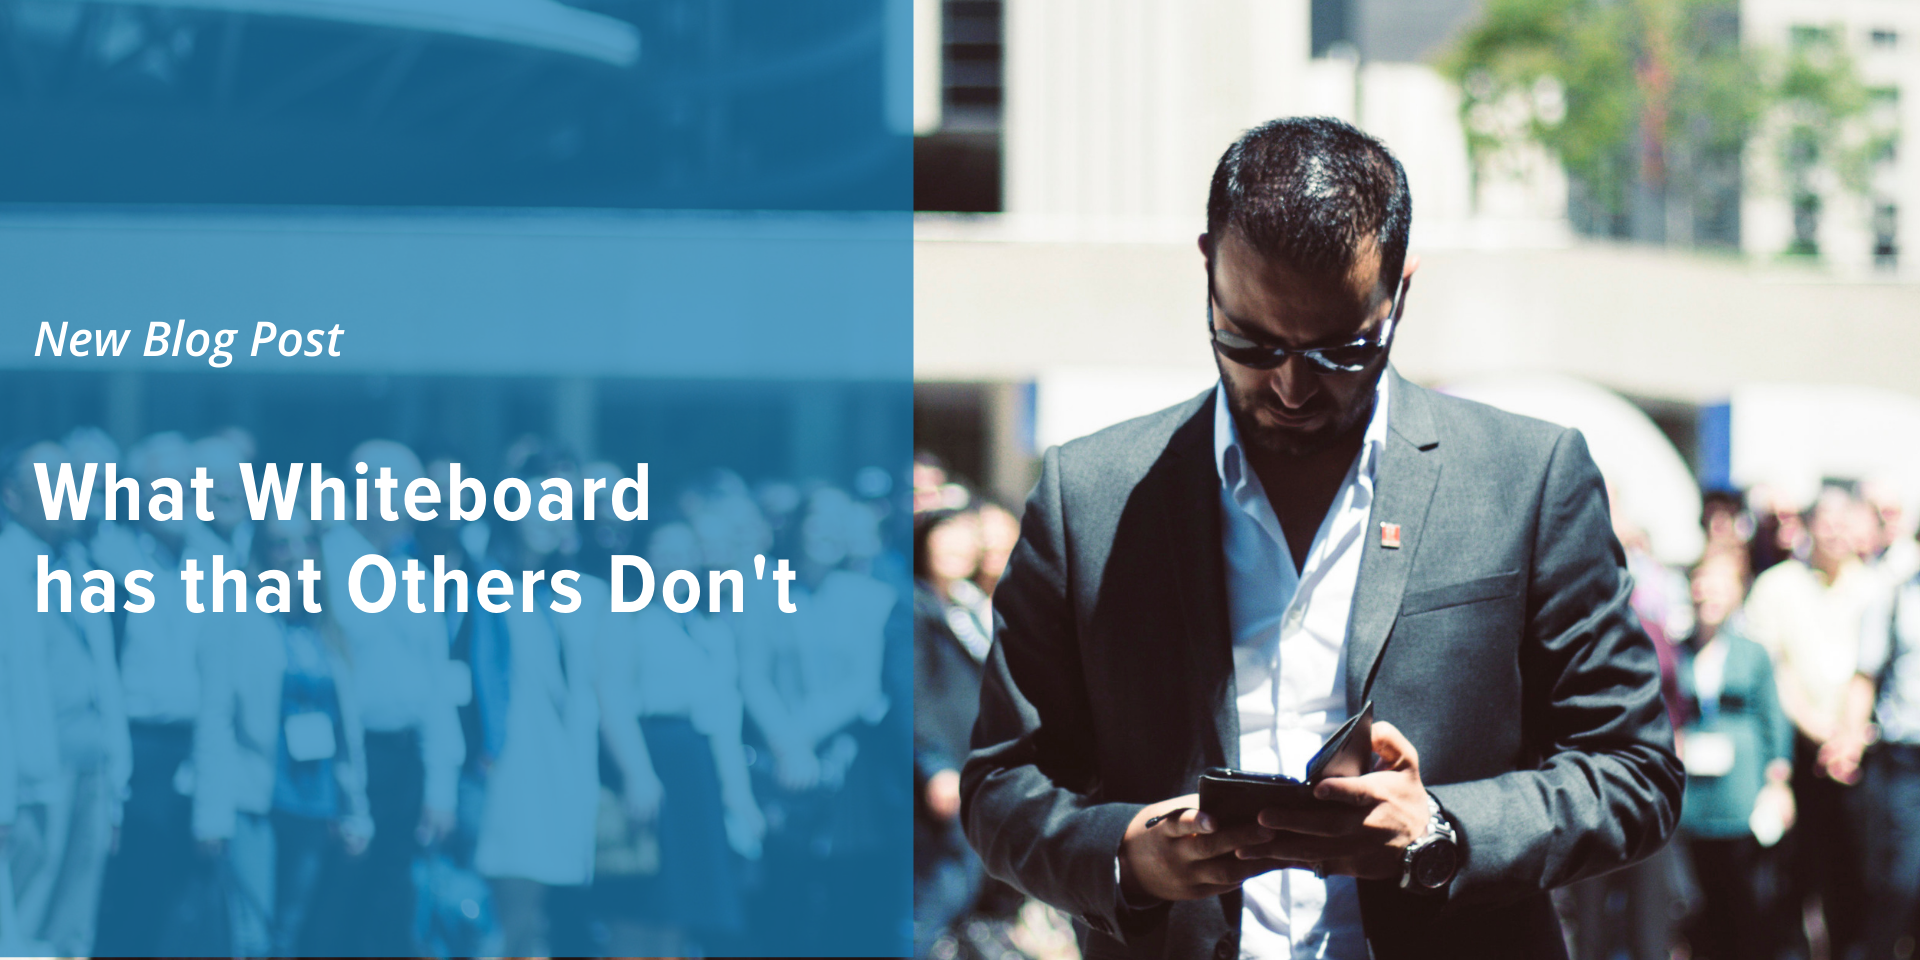 """Whiteboard CRM graphic has the title """"What Whiteboard has that Others Don't"""" over a blue background and a man staring at his phone presumably using mortgage CRM"""